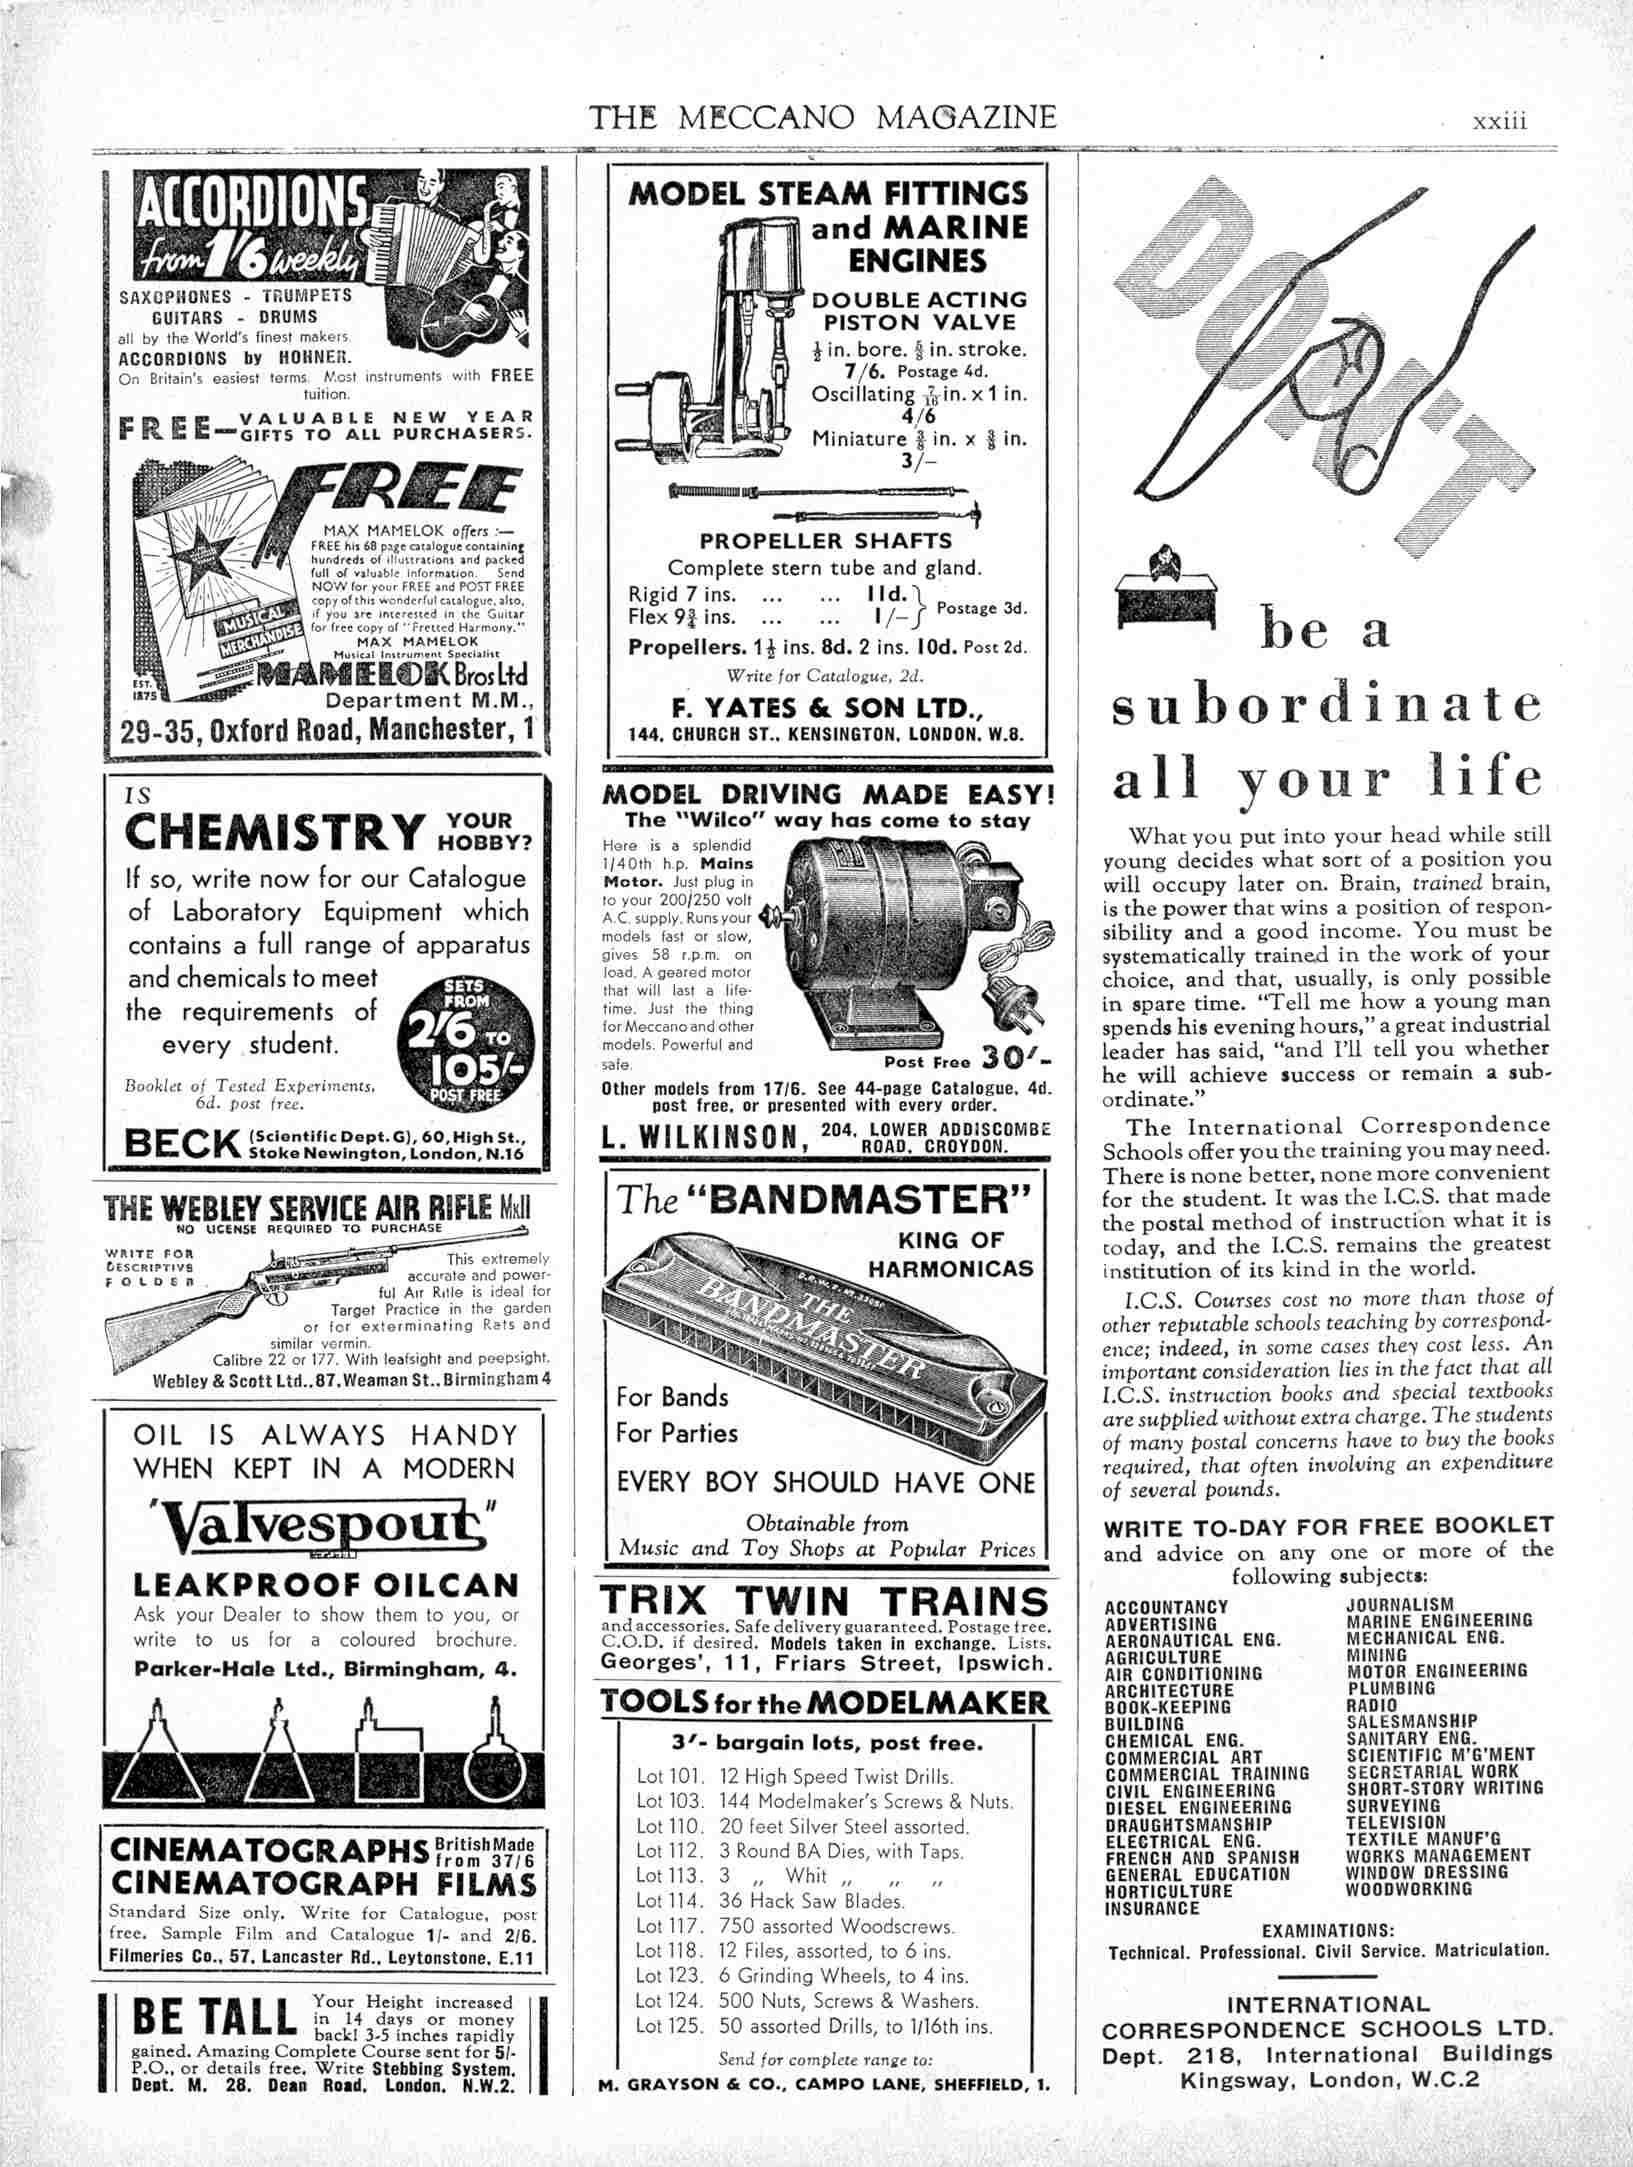 UK Meccano Magazine January 1938 Page xxiii